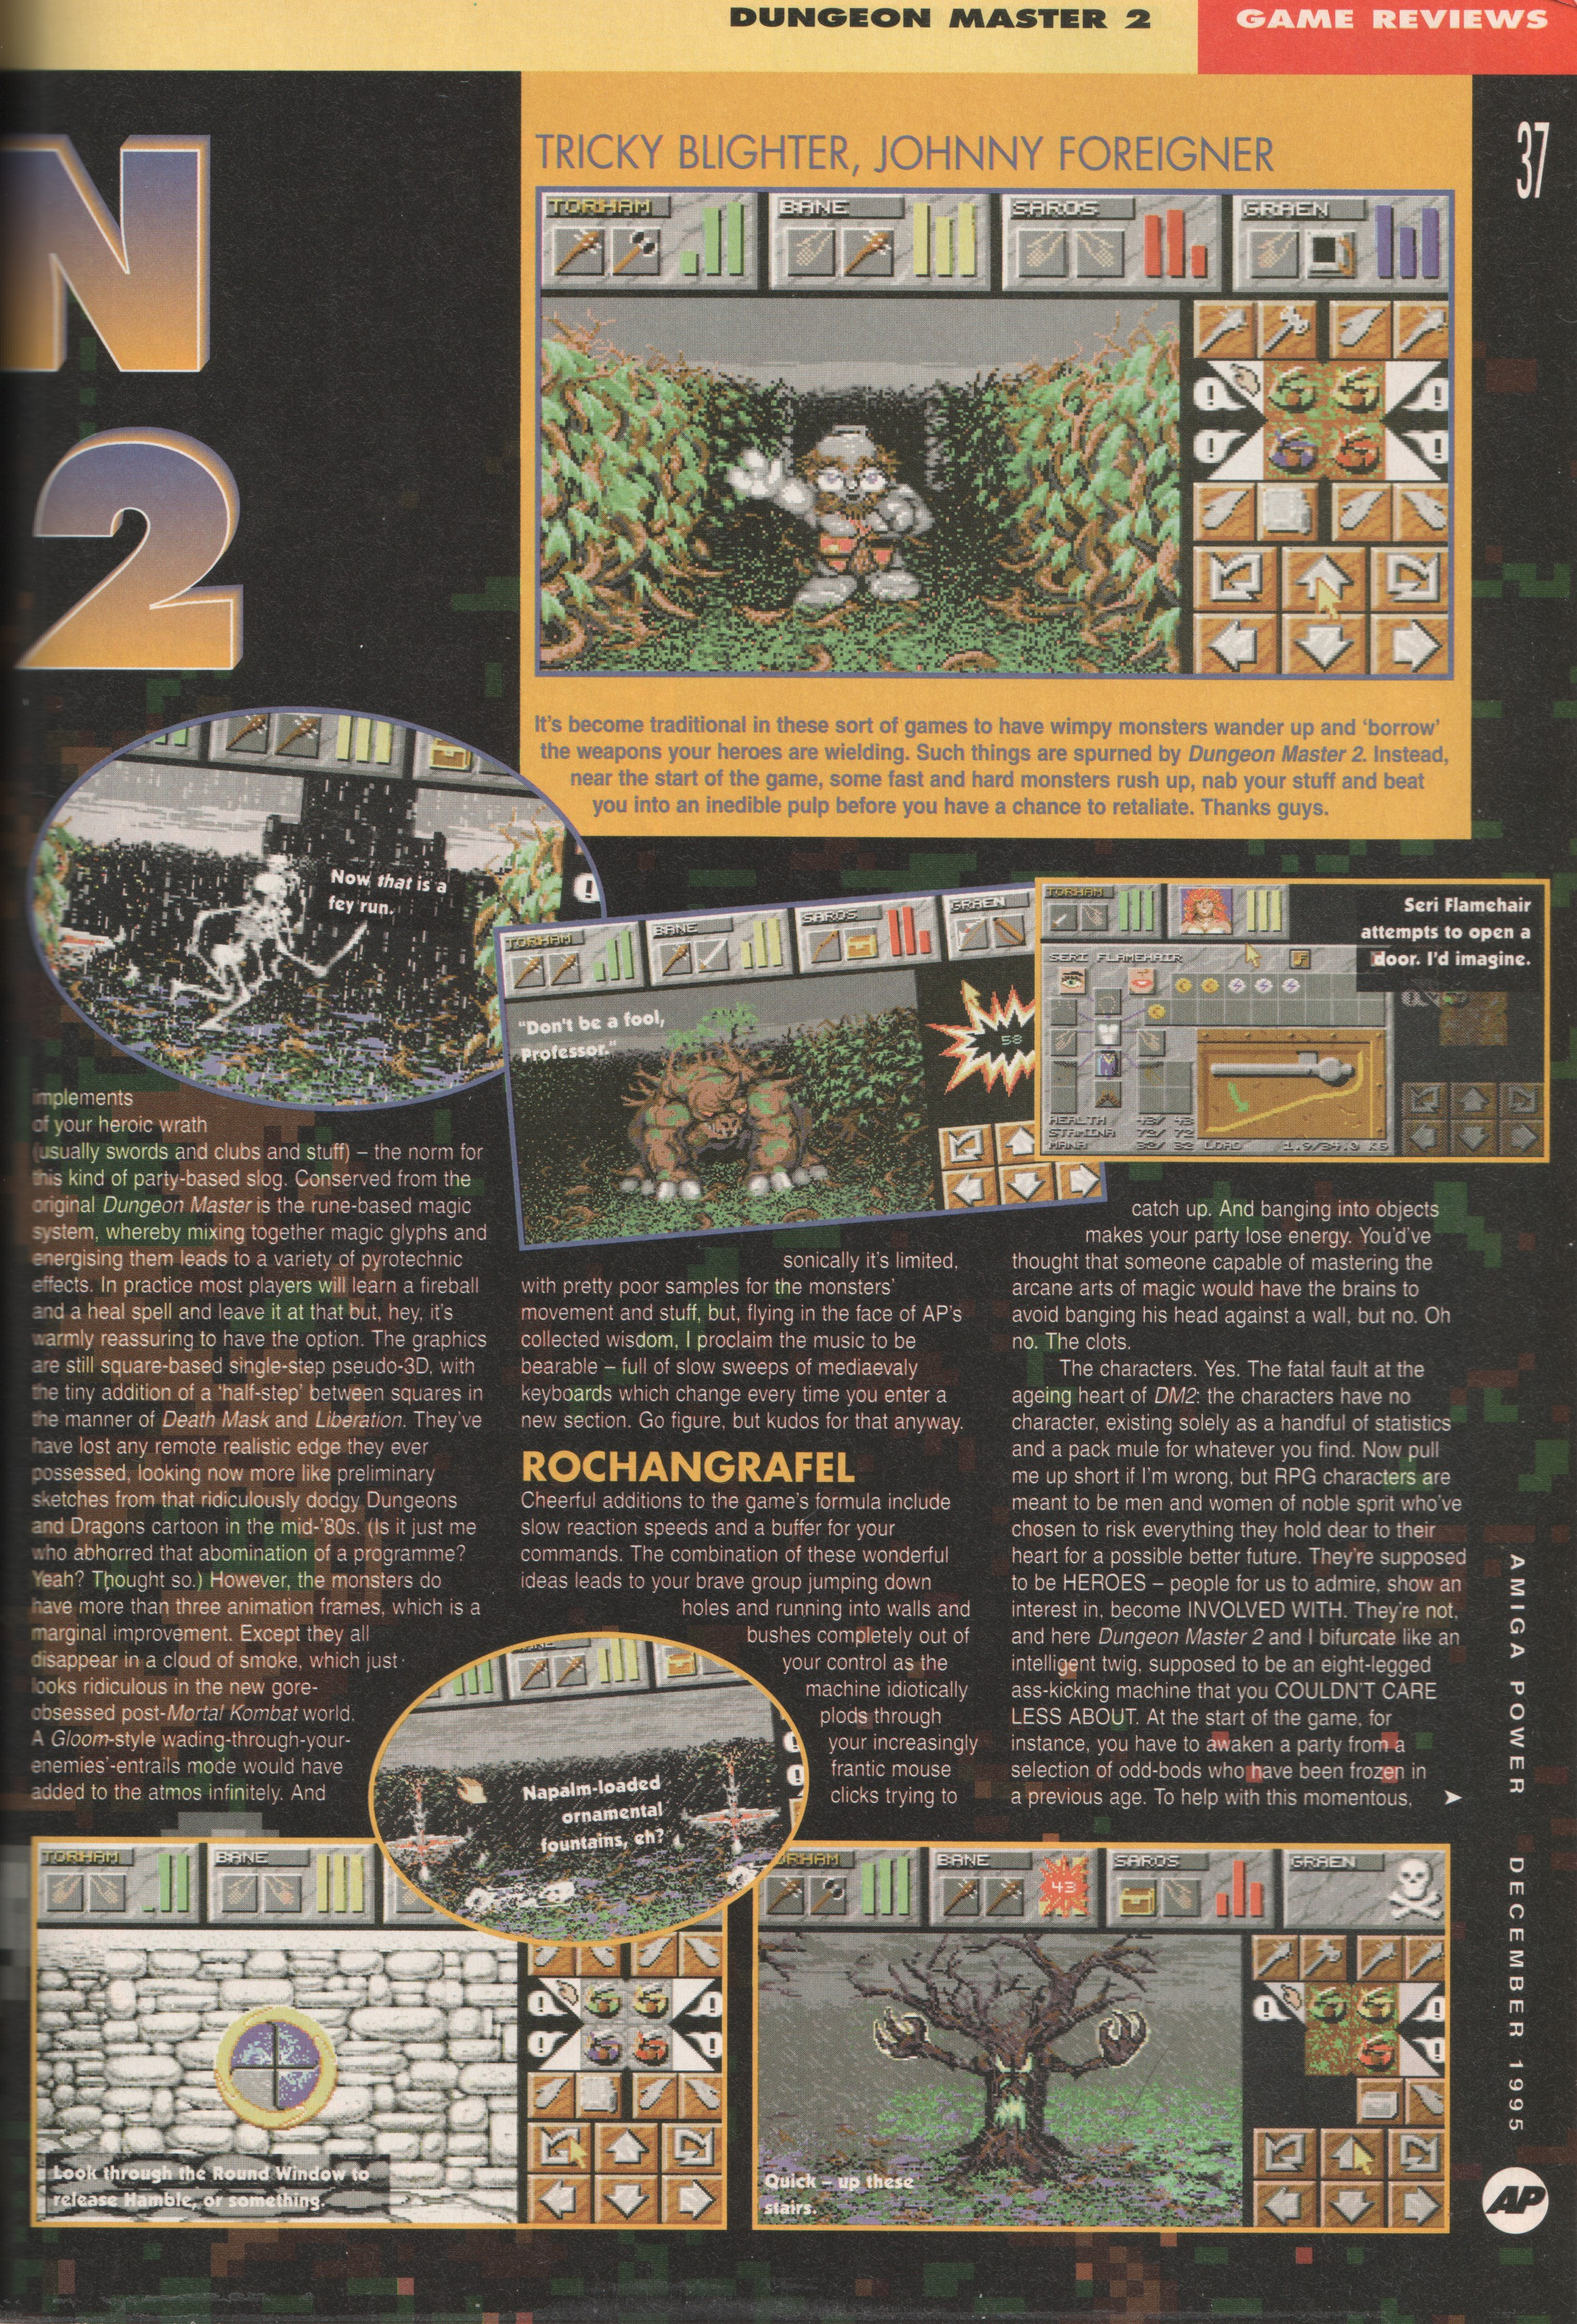 Dungeon Master II for Amiga Review published in British magazine 'Amiga Power', Issue #56 December 1995, Page 37